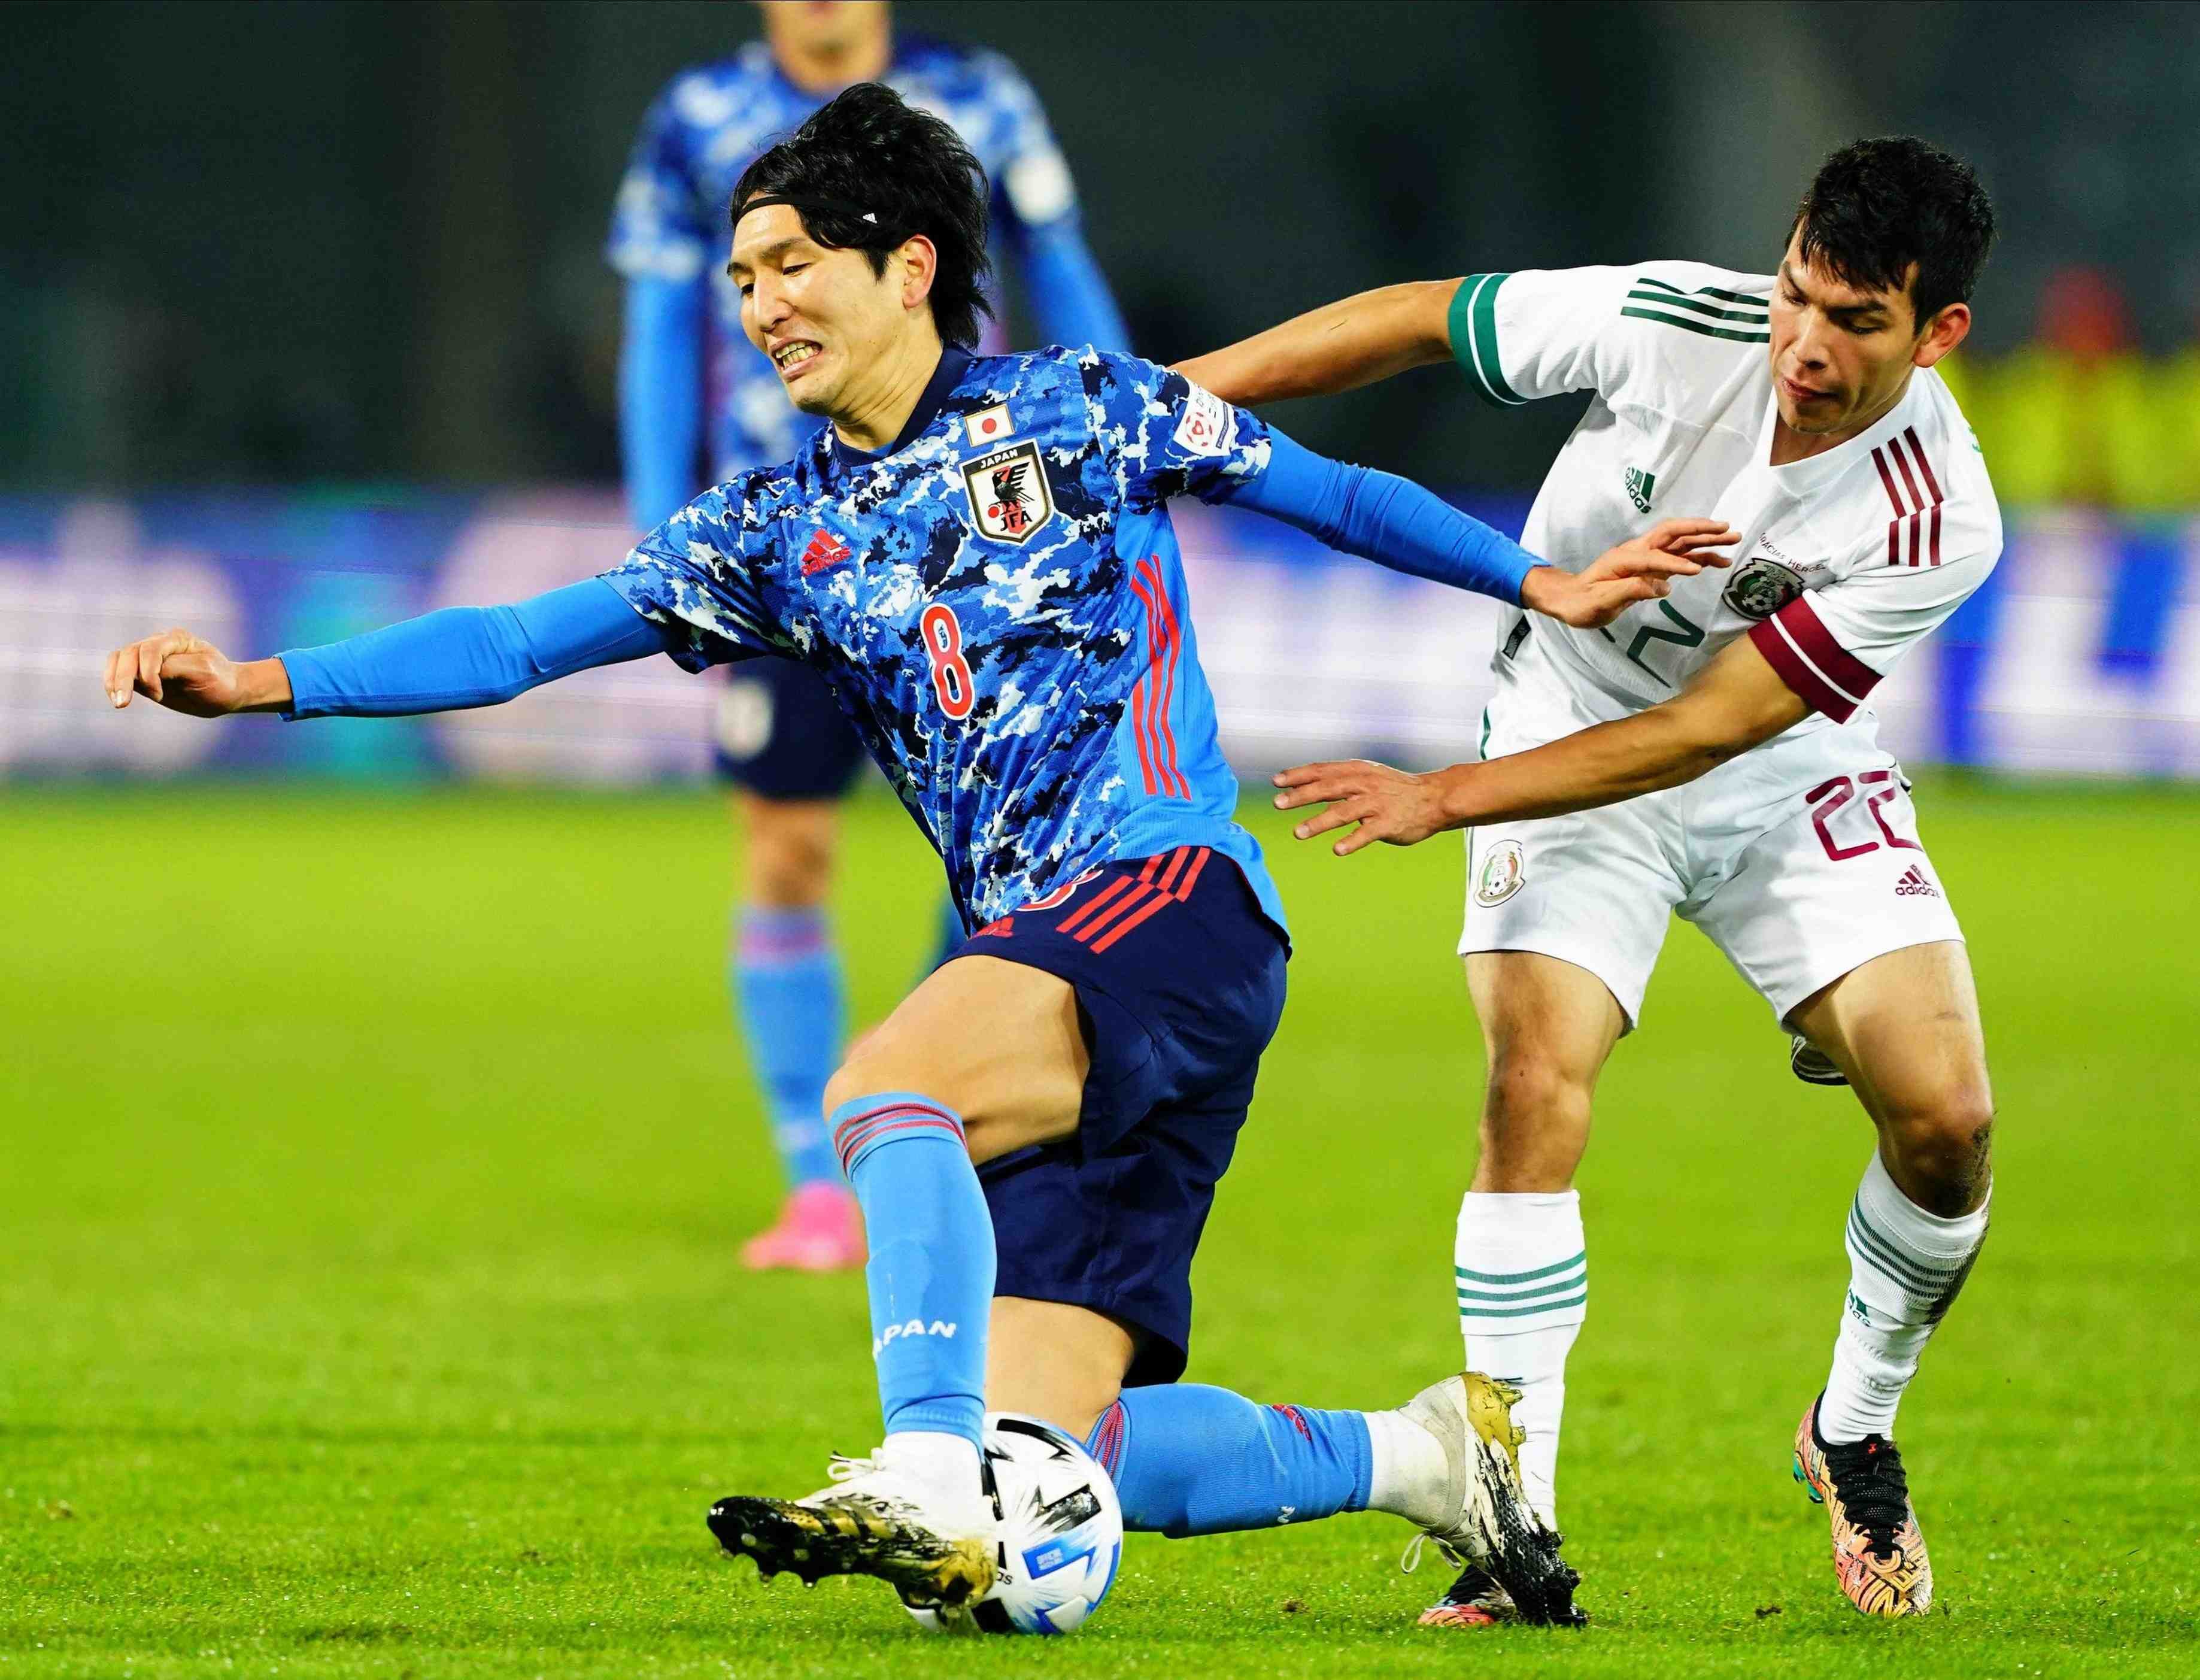 Japan men's soccer club falls 2-0 to Mexico in the second friendly in Austria on Tuesday 010